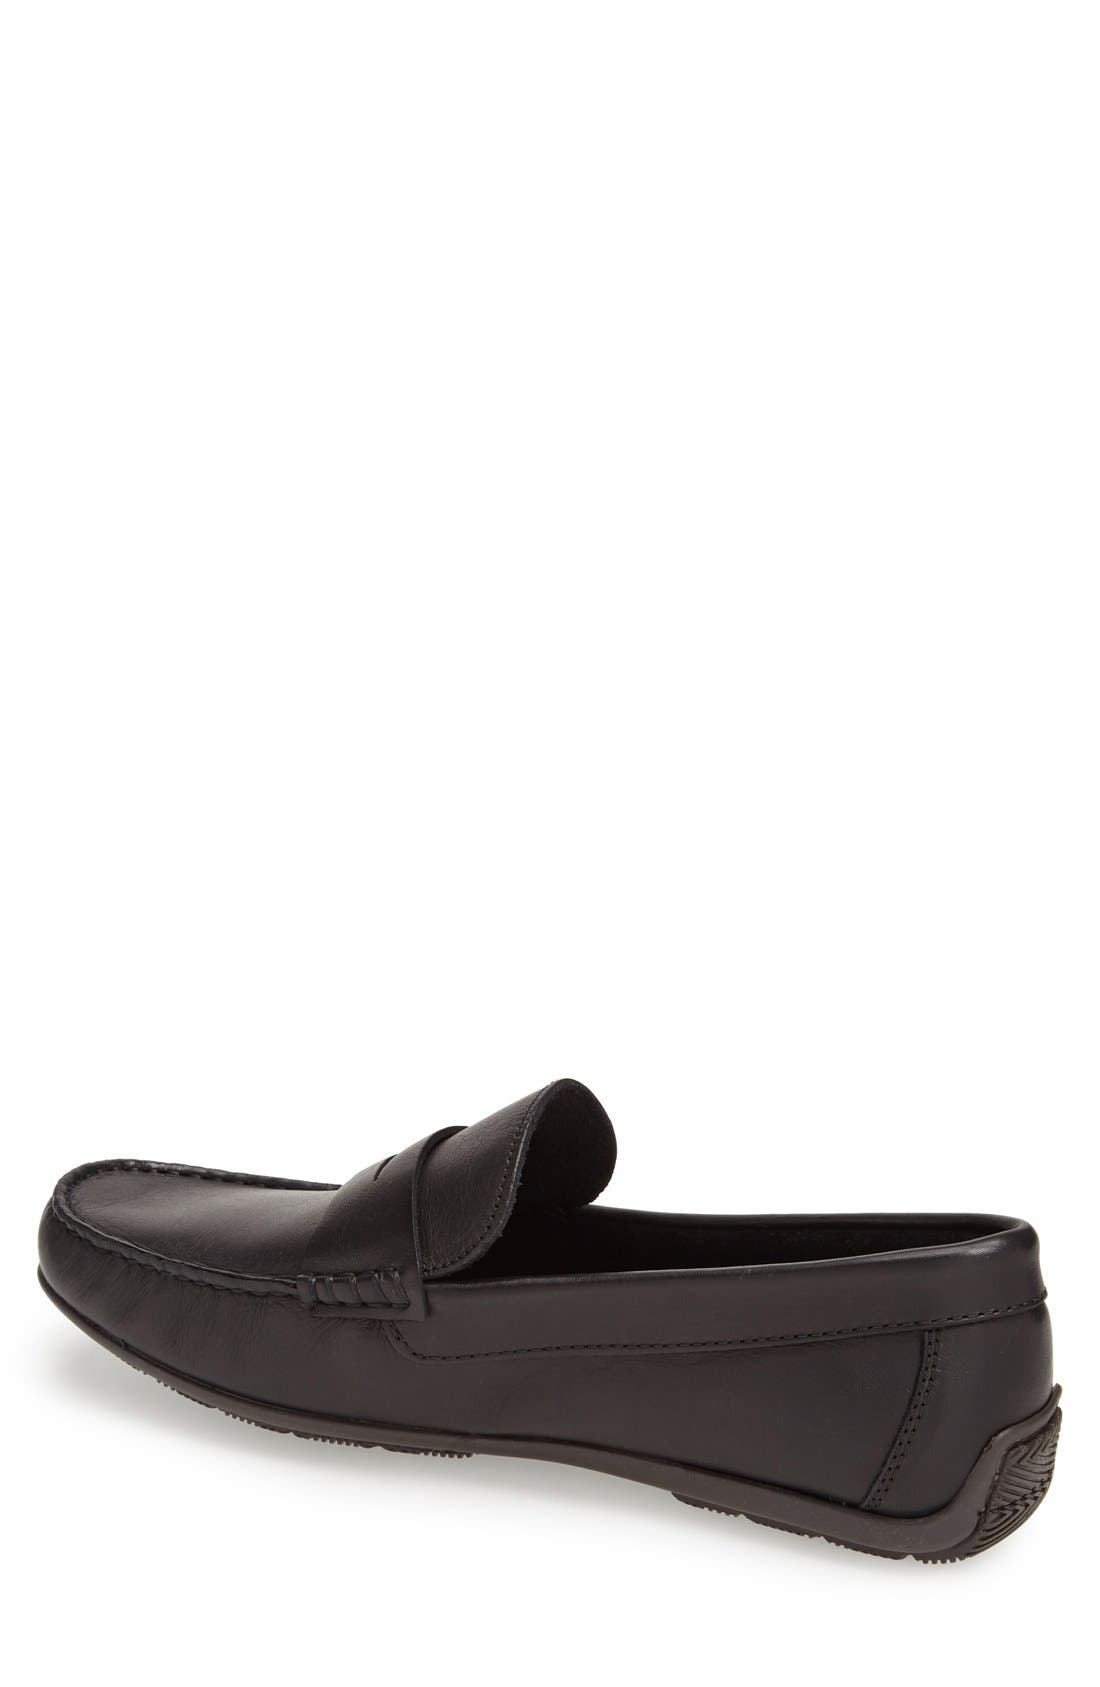 'Paris' Leather Penny Loafer,                             Alternate thumbnail 2, color,                             BLACK